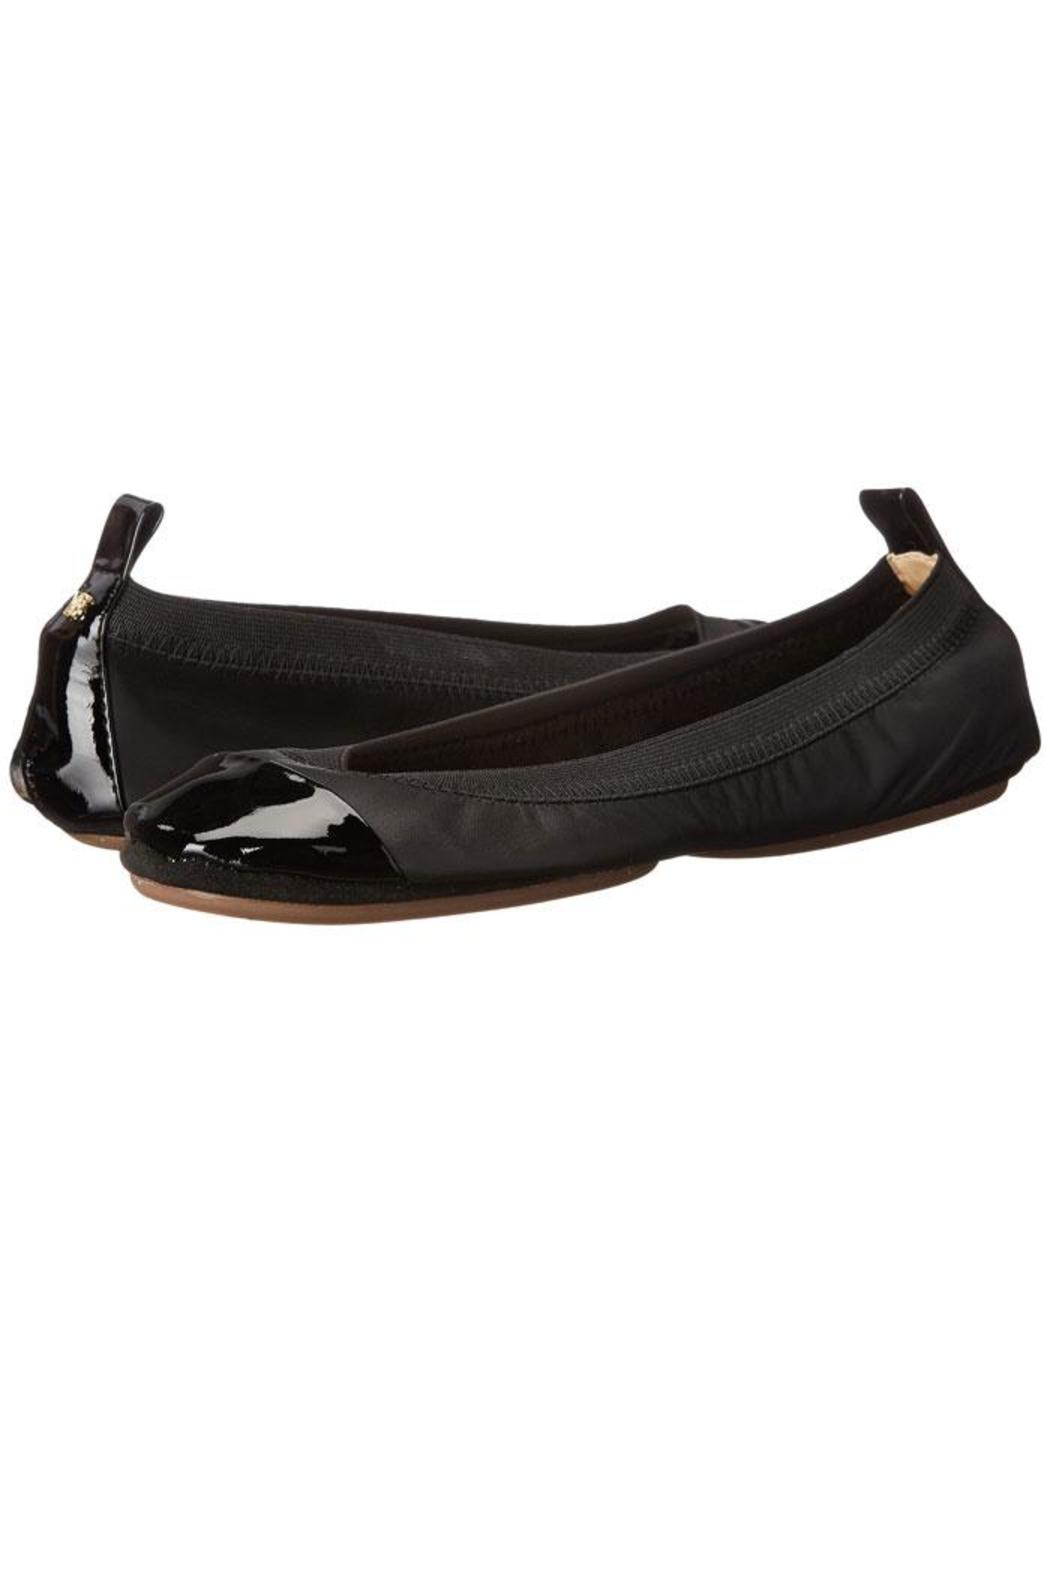 Yosi Samra Two-Tone Foldable Flats - Front Full Image